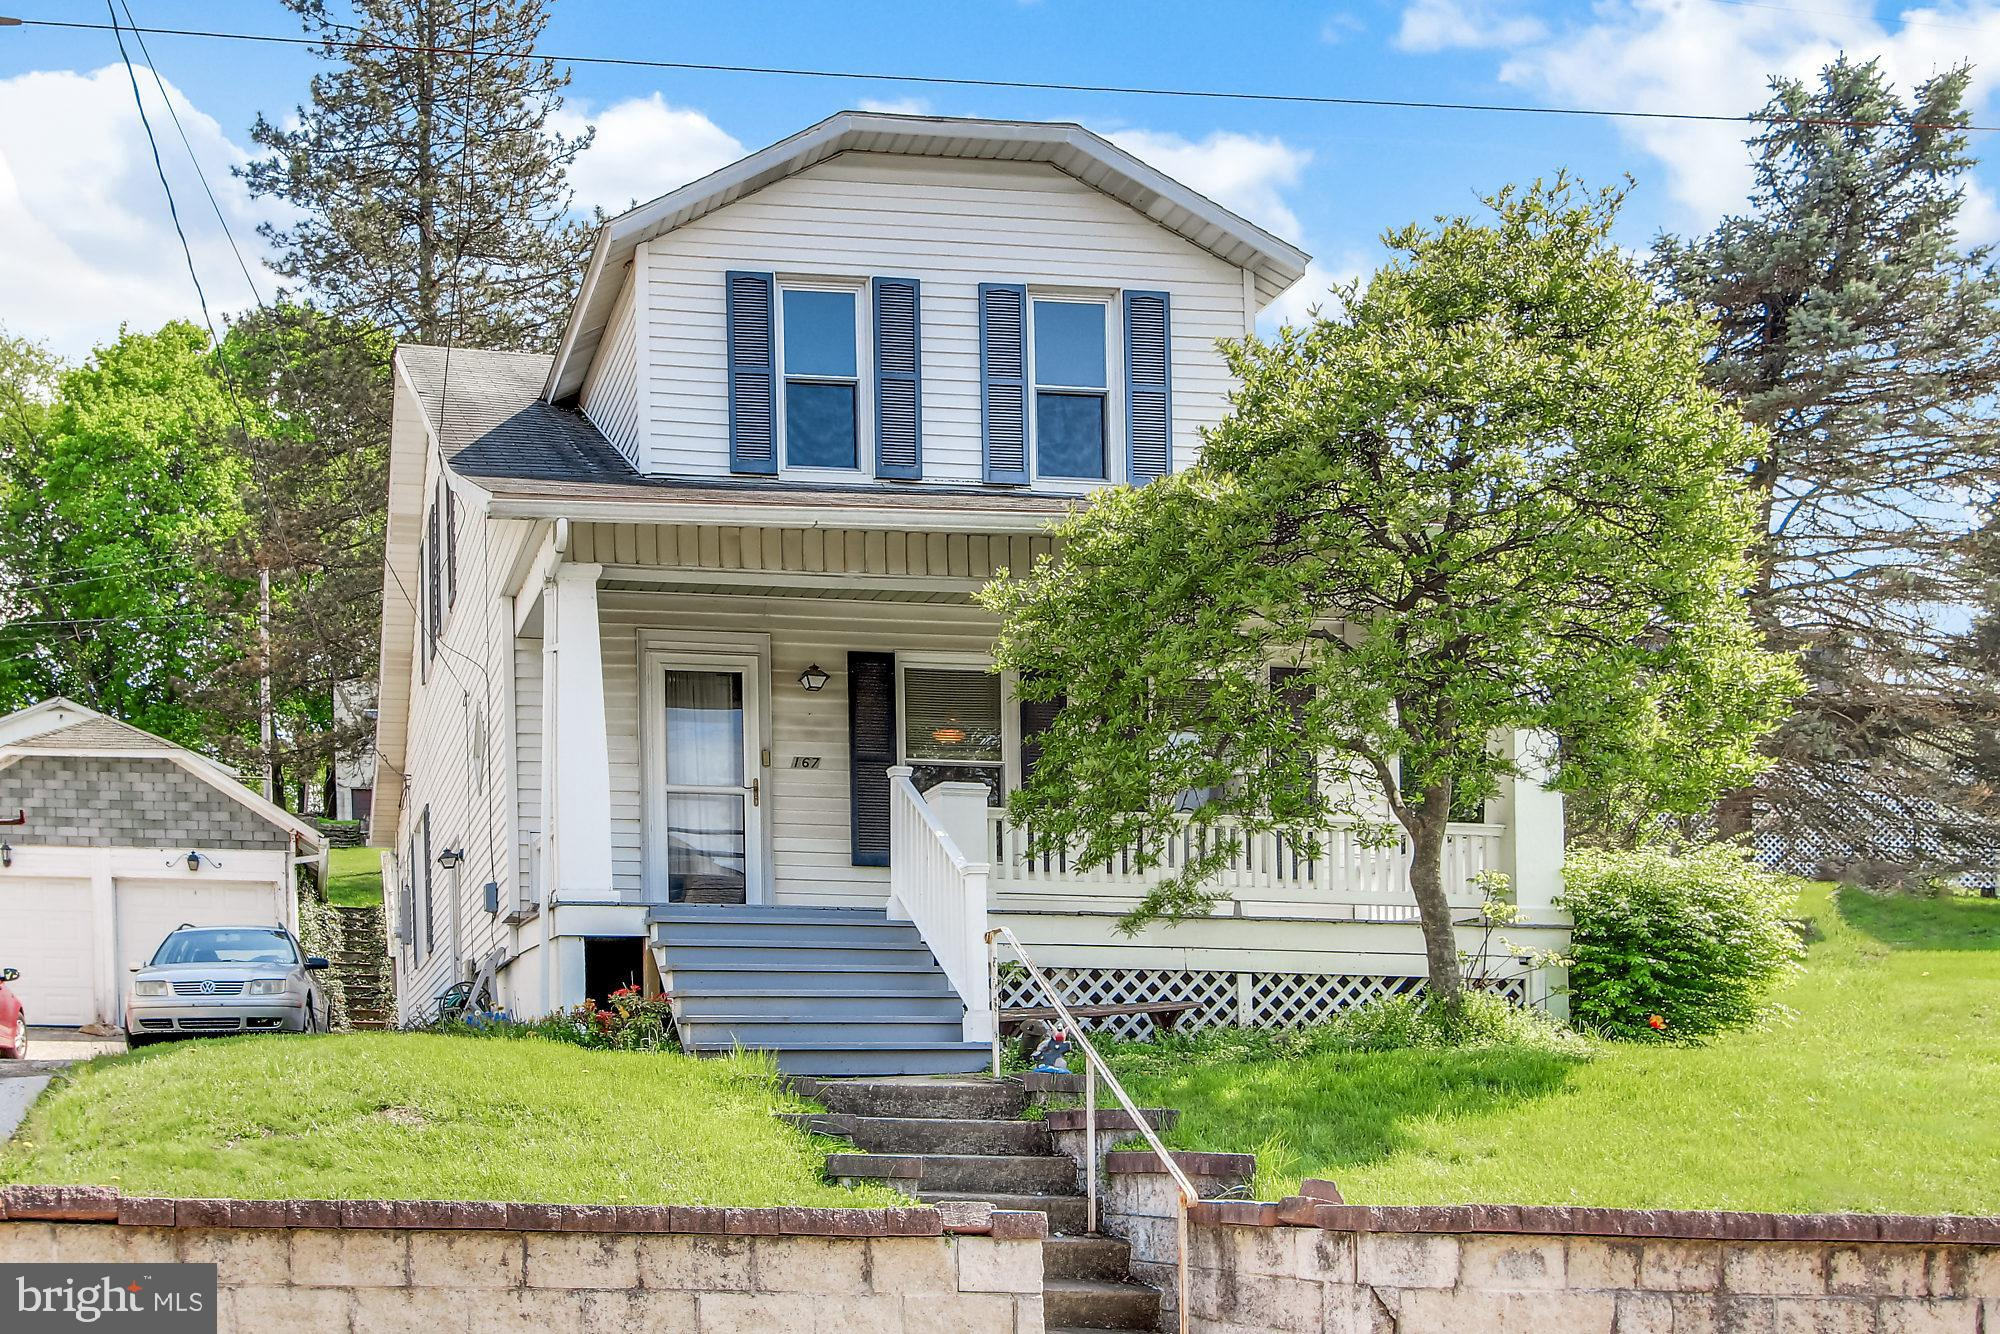 167 W MAIN STREET, WINDSOR, PA 17366